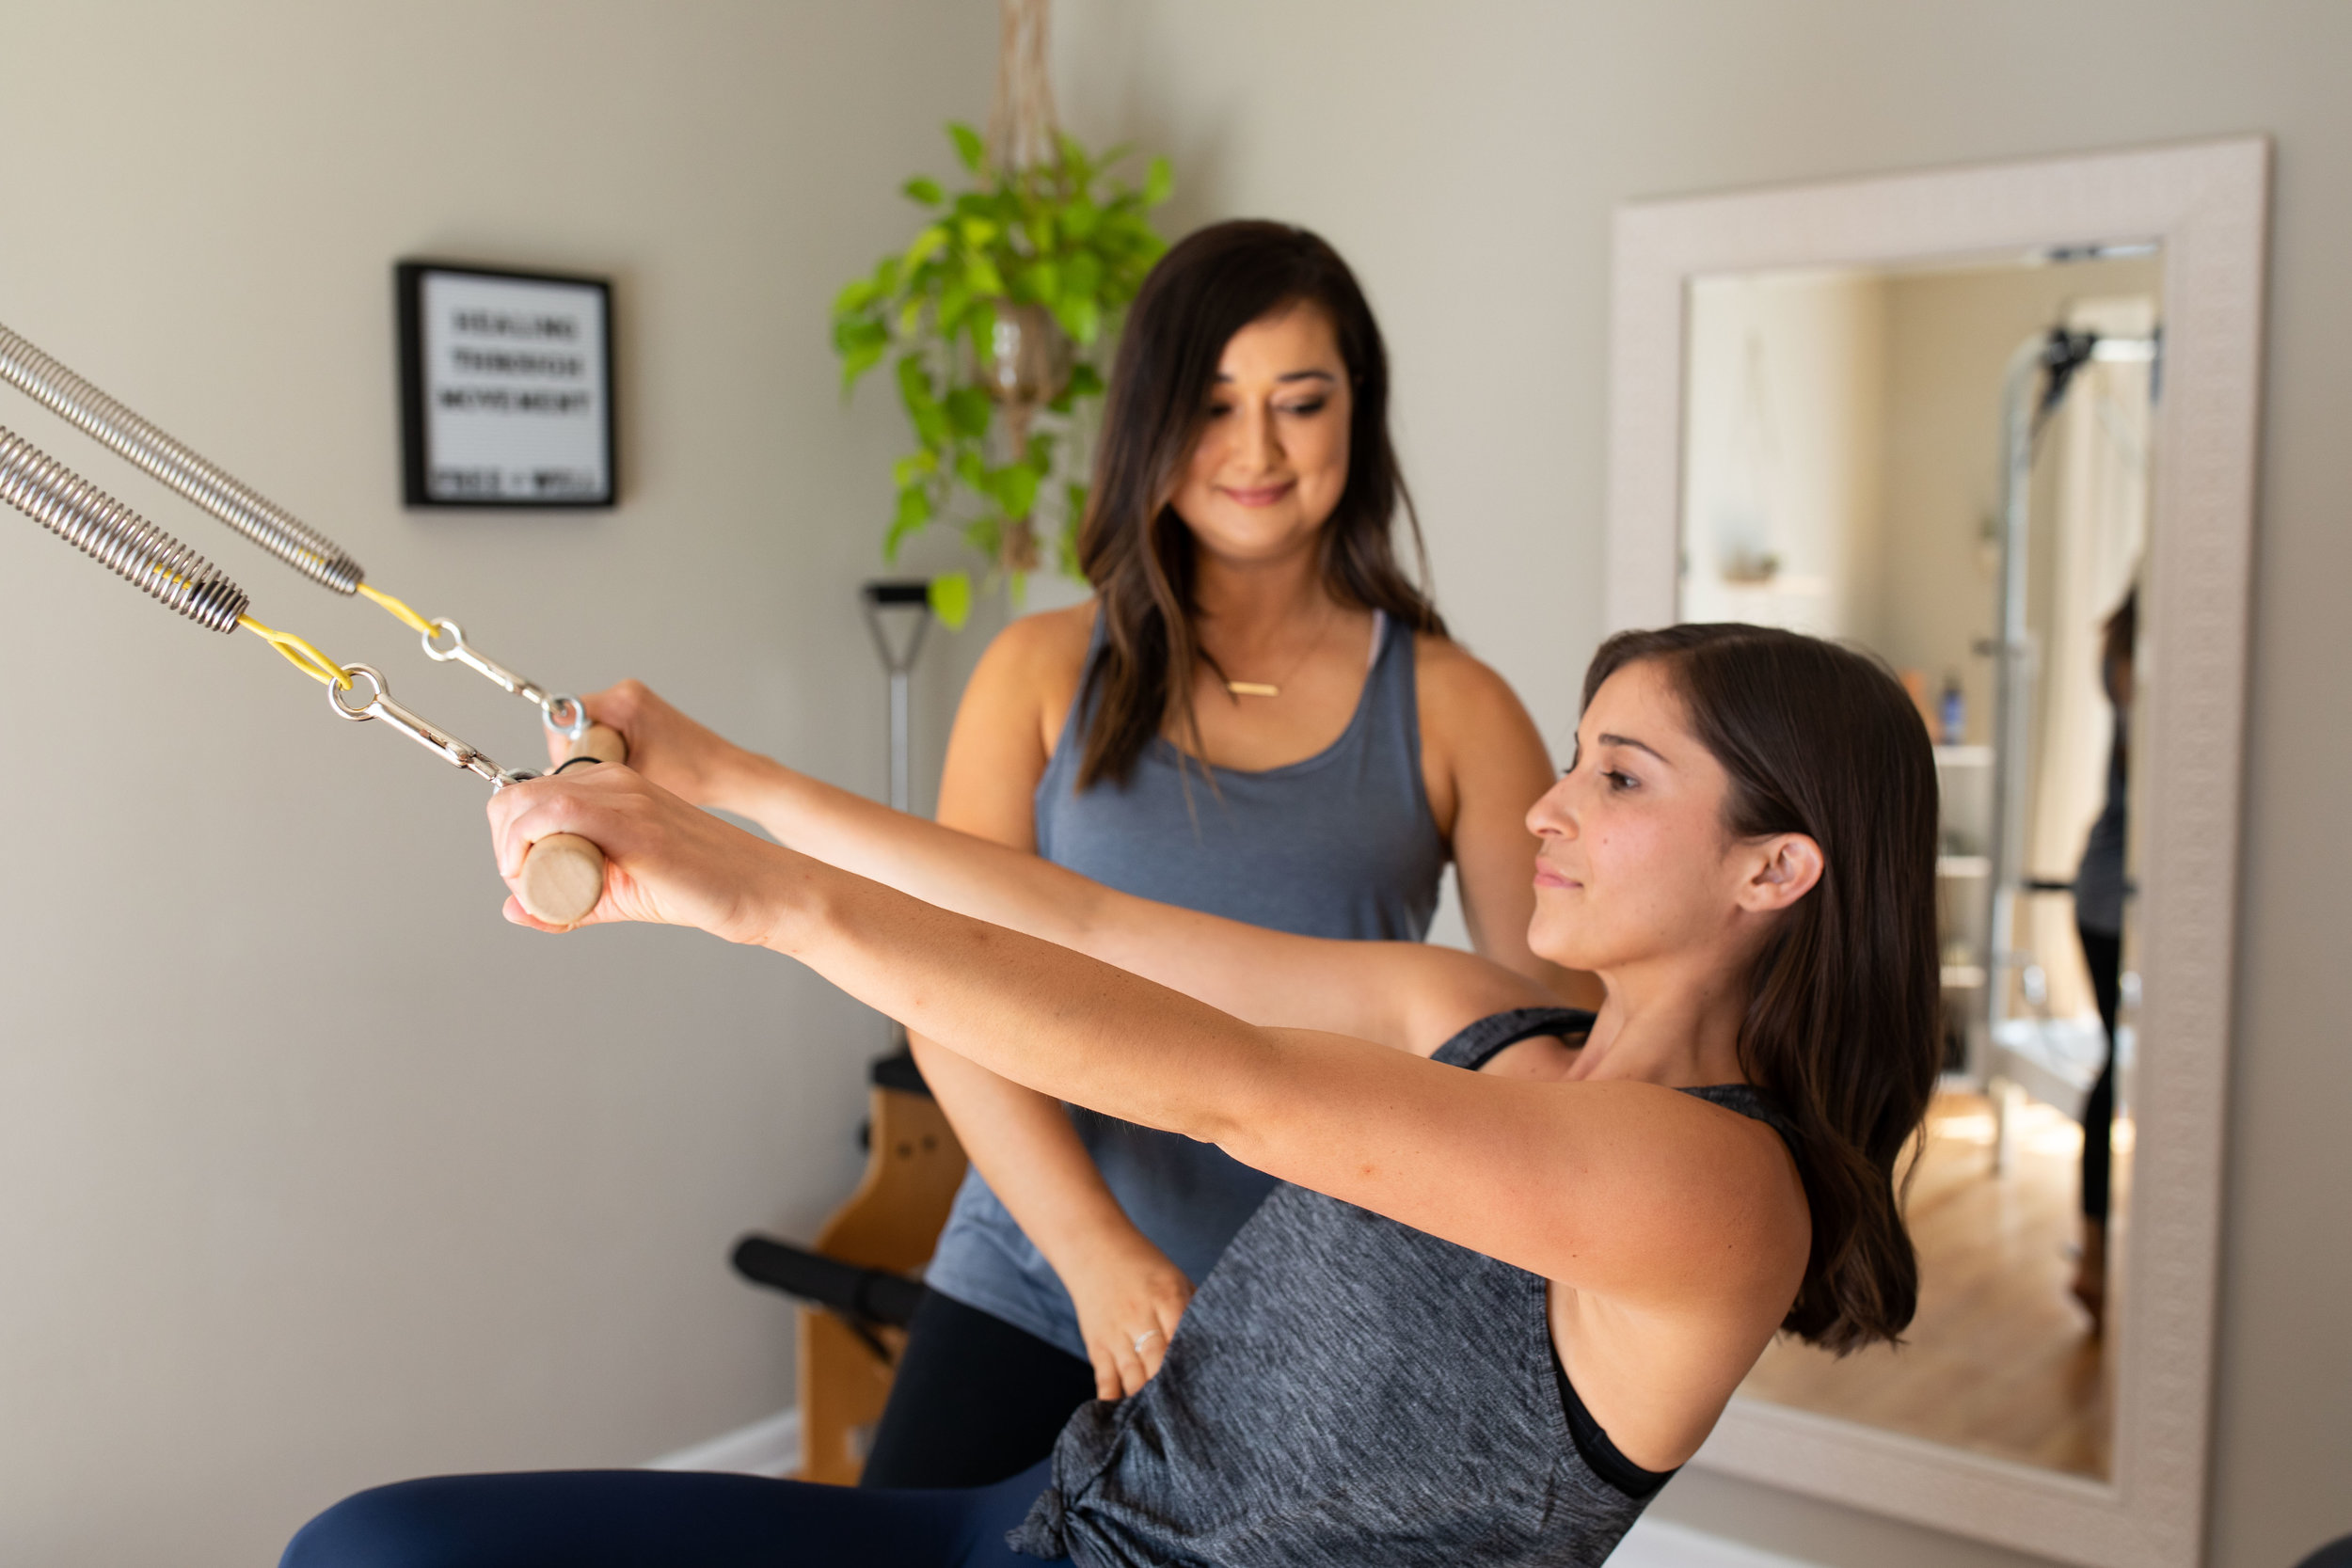 private sessions - Enjoy one-on-one training that is specifically tailored to your body's needs and your fitness goals during a 55-minute session.